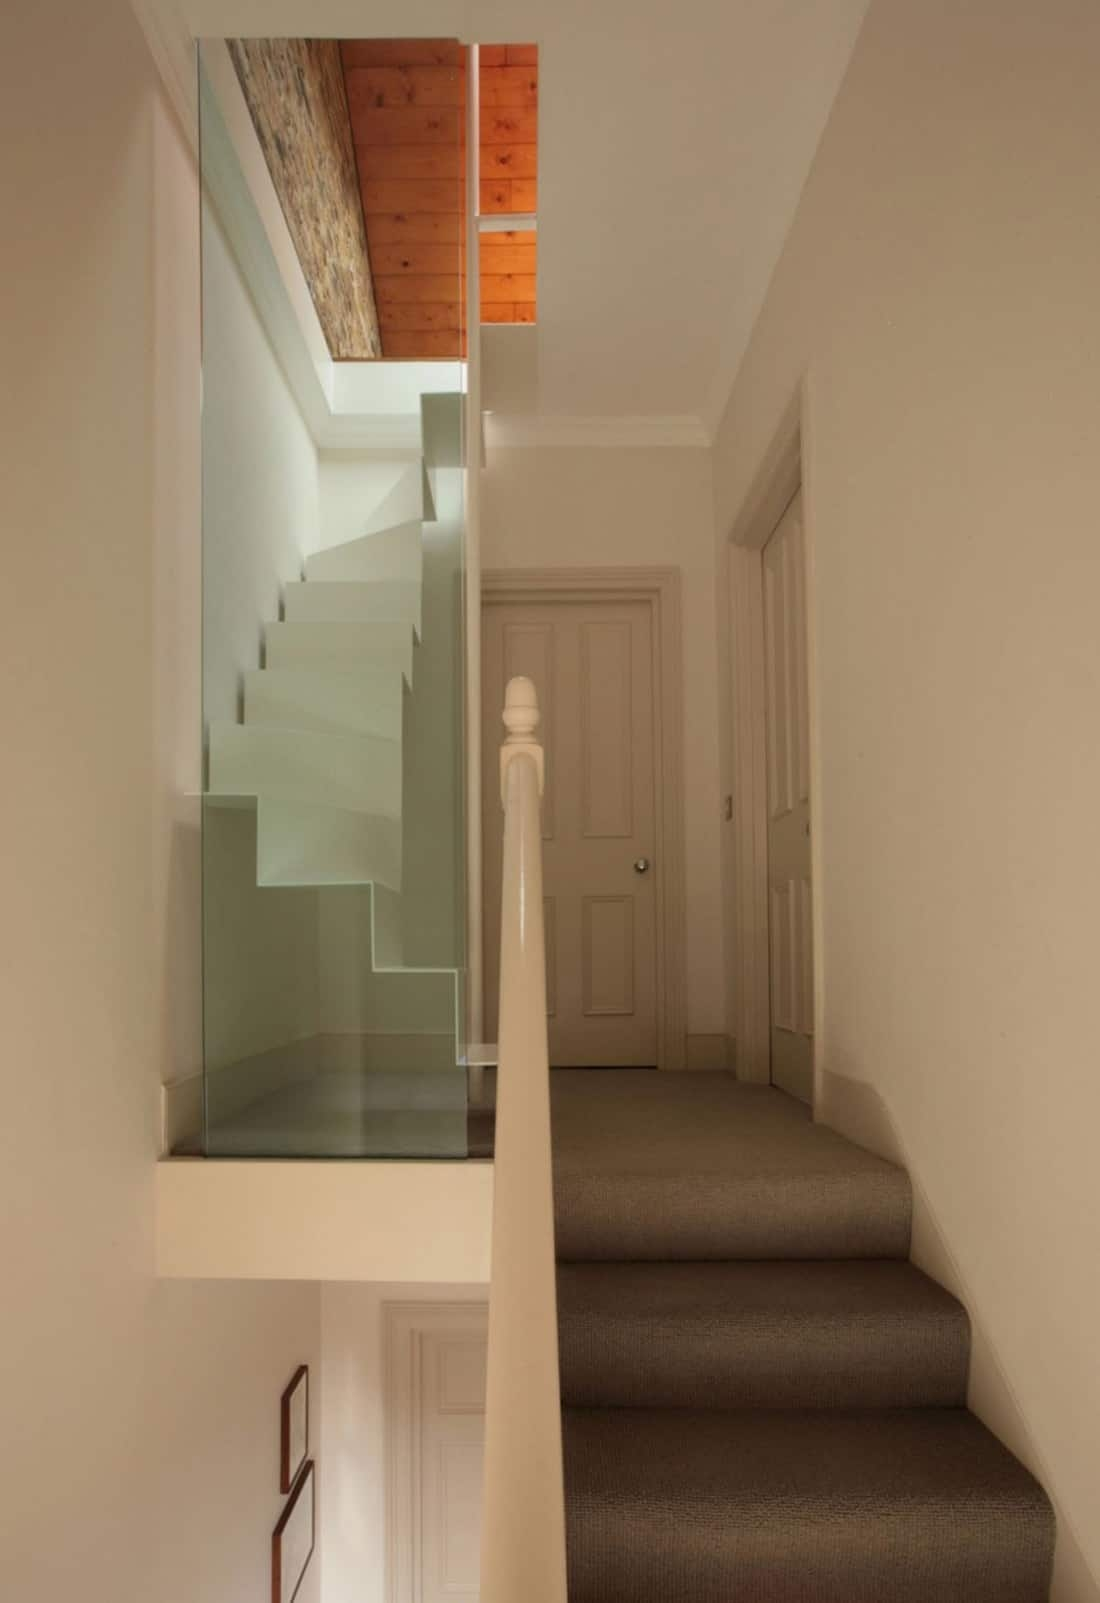 Unique And Creative Staircase Designs For Modern Homes | Creative Stairs For Small Spaces | Build In Storage | Compact | Interior | Round Shape | Wooden